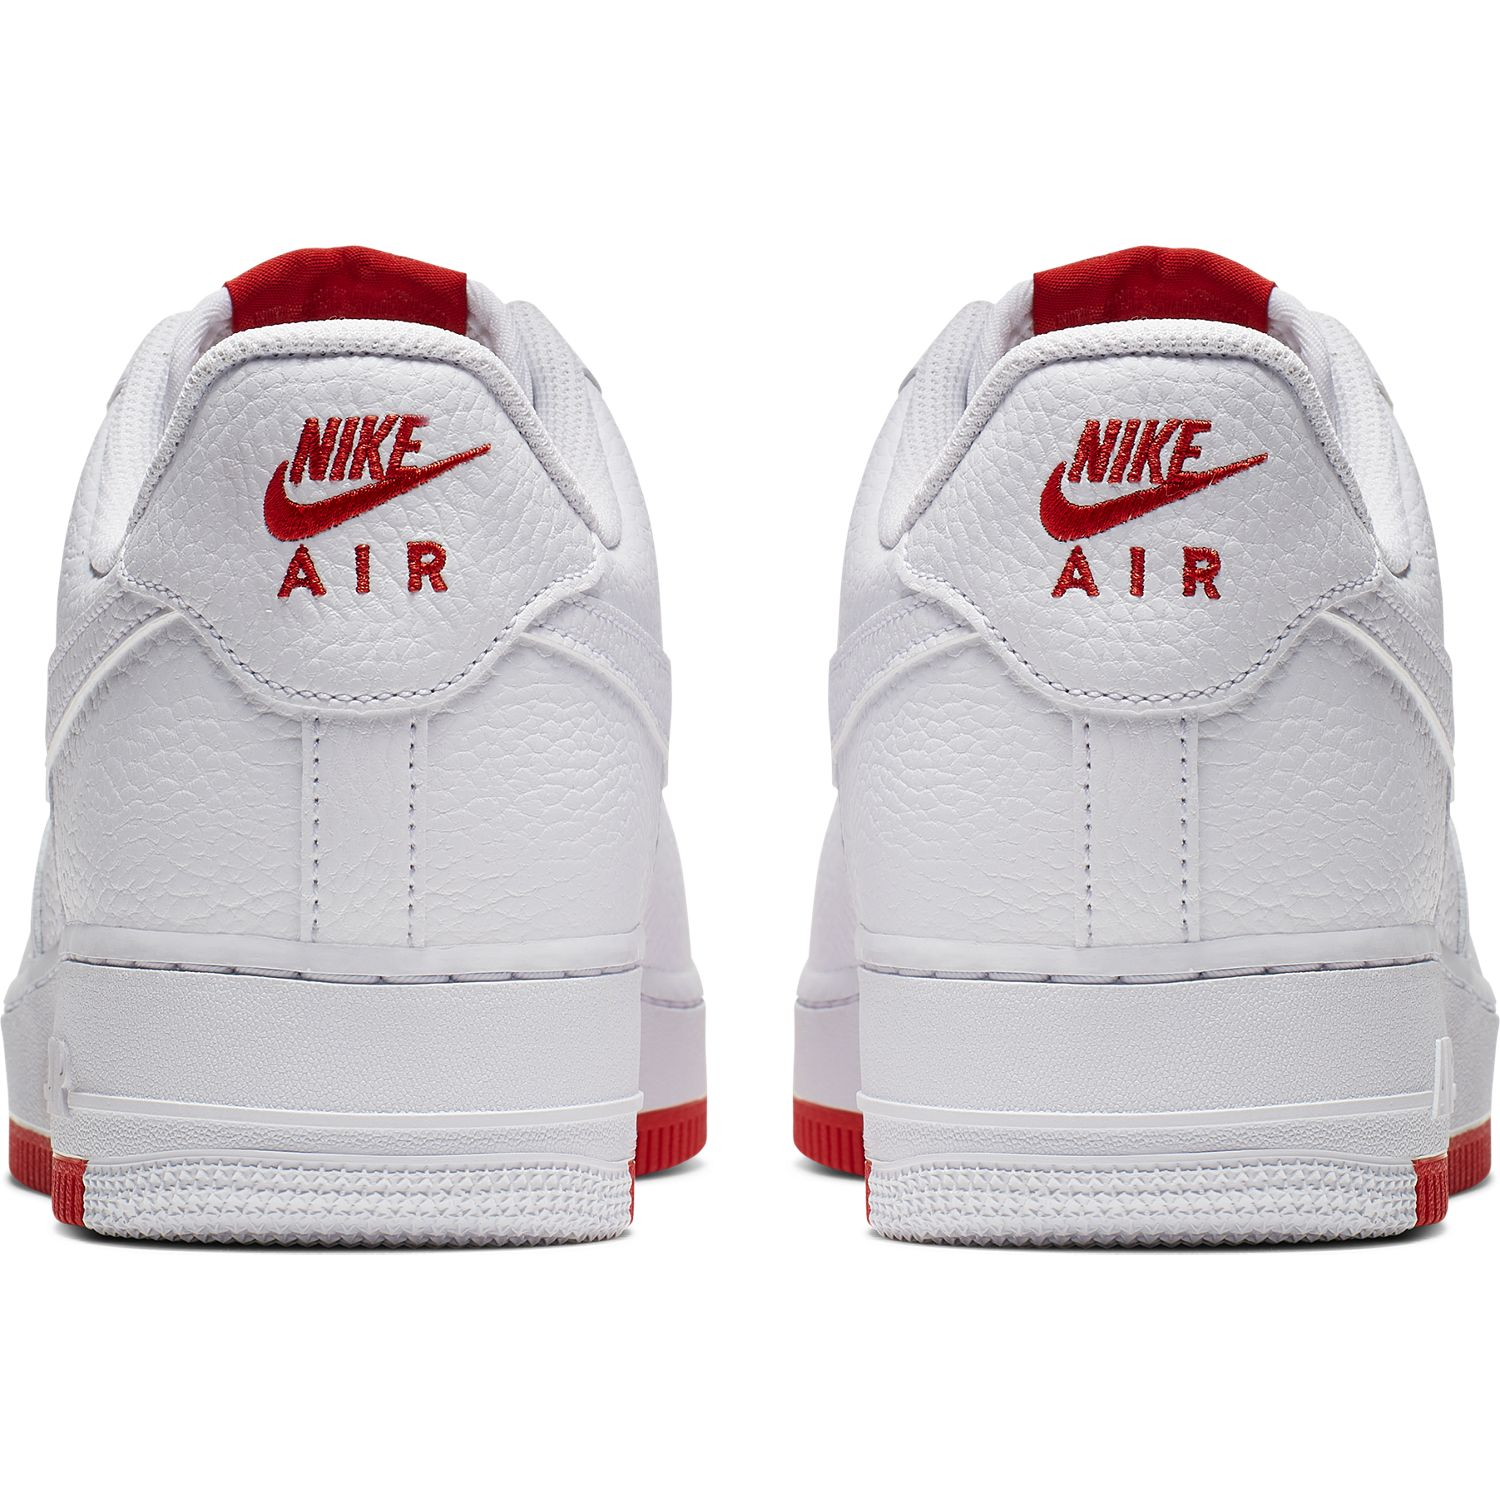 BUTY NIKE AIR FORCE 1 07 1 (AO2409 101) WhiteRed | Obuwie